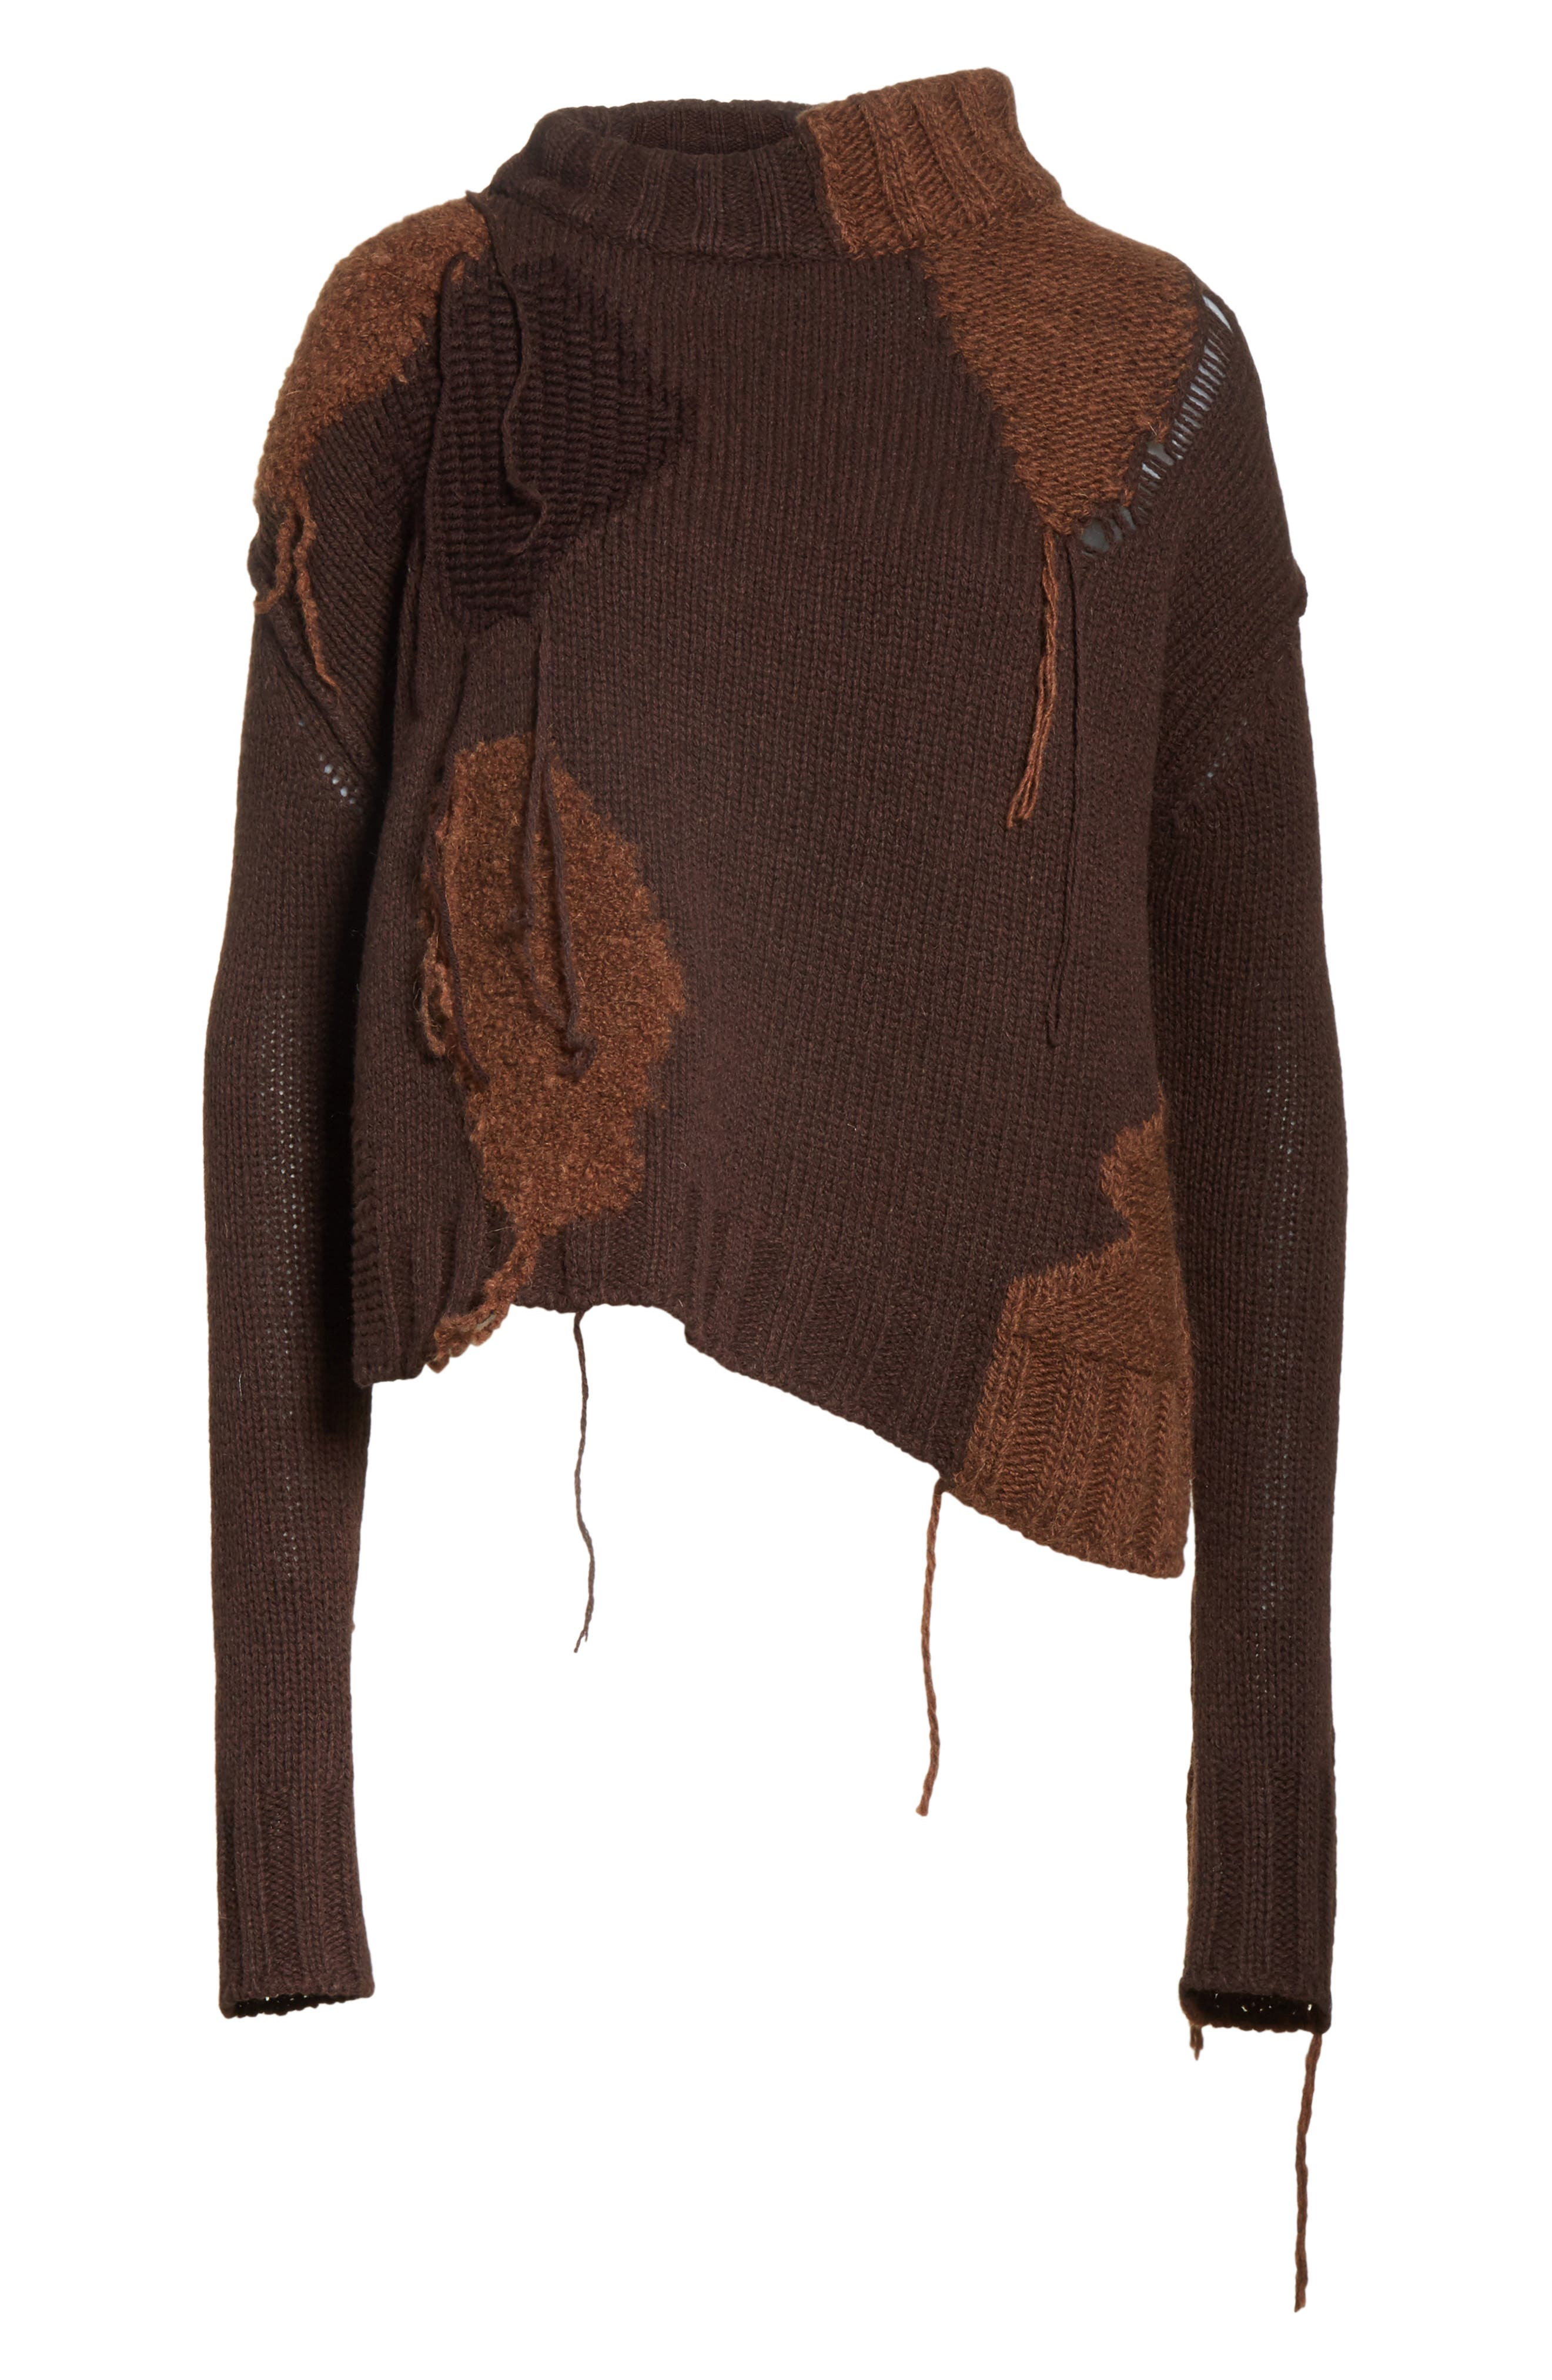 Ovira Distressed Patchwork Sweater,                             Alternate thumbnail 6, color,                             200